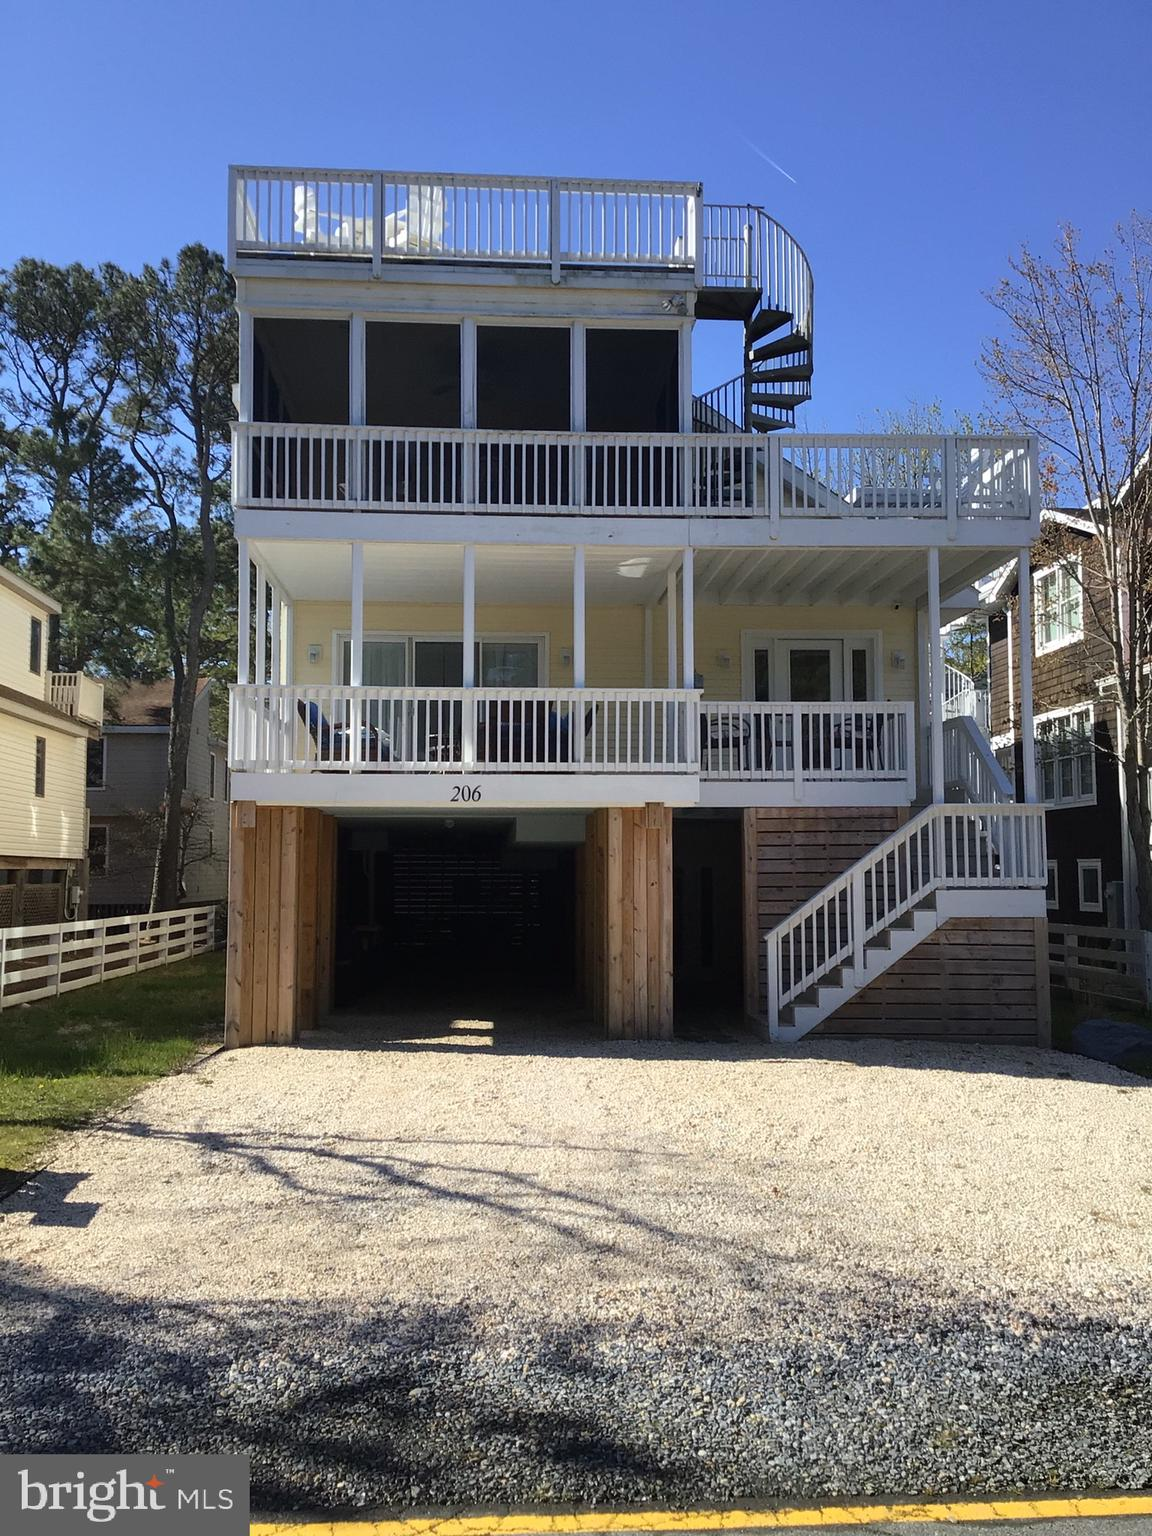 One of Bethany's best rentals. Great investment! Updated home in downtown Bethany Beach 2 and 1/2 blocks from the beach and boardwalk. House has spacious parking underneath as well as 2 driveway parking spots. Home is 3 levels with covered porches and a rooftop deck.  Property has proven to be an exceptional rental, but ready for year round living. Under the house is a game room with seating, a large picnic table, great for crab dinners and a large outdoor shower. Entrance has a half bath. Second Floor has living room, kitchen, laundry, dining area and 3 bedrooms and 2 full bathrooms.  The third floor has an additional living room with a sleep sofa, 3 bedrooms and 2 full bathrooms. A spiral staircase from the 3rd floor leads to the roof top deck. The home comes furnished, ready for move in. Rental agreements must be honored.